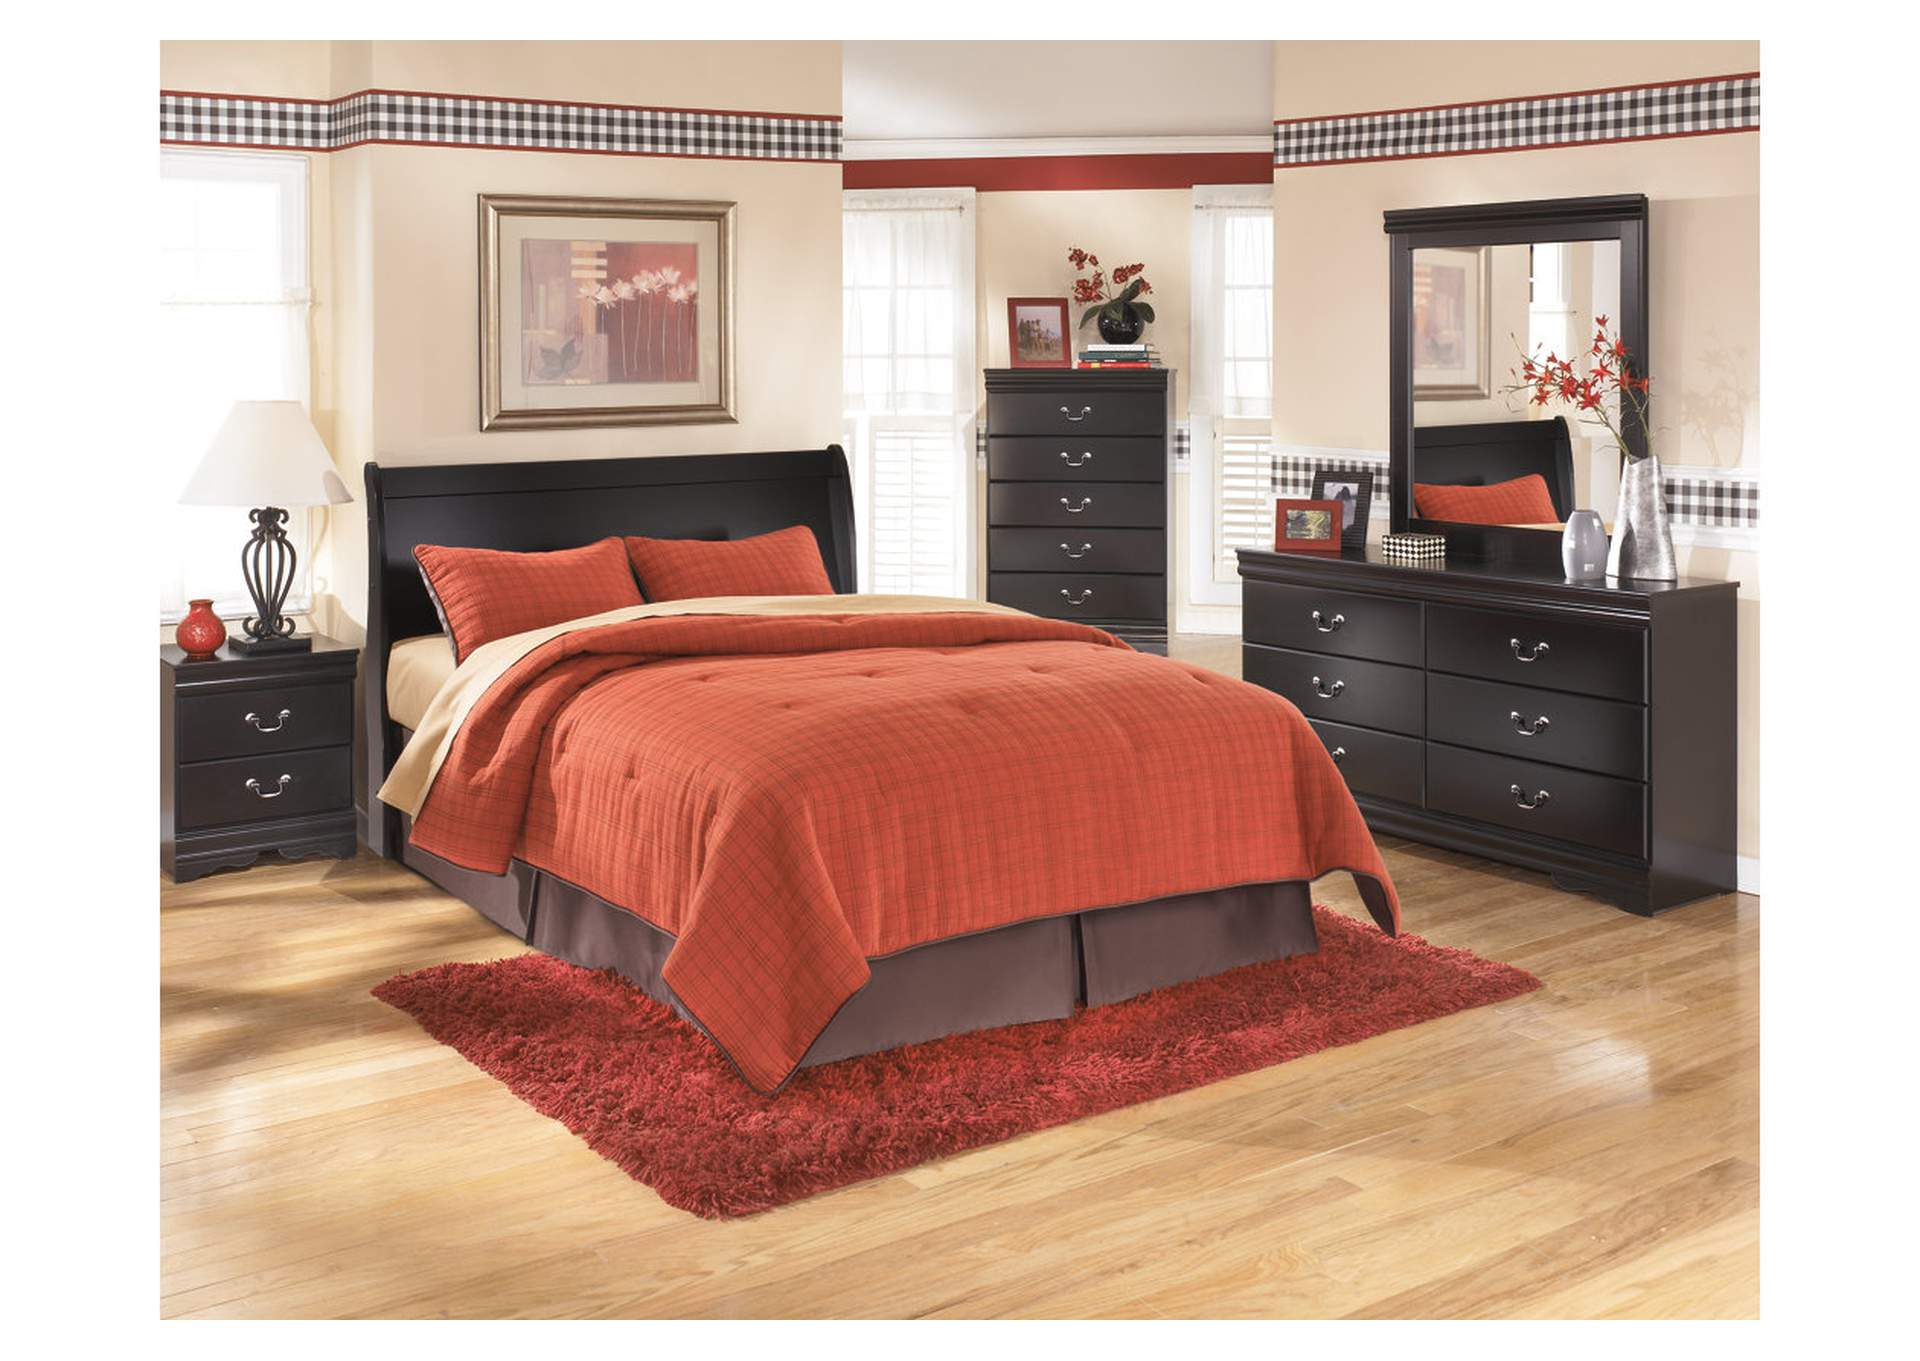 Huey Vineyard Queen Sleigh Headboard, Dresser, Mirror & Drawer Chest,Signature Design by Ashley